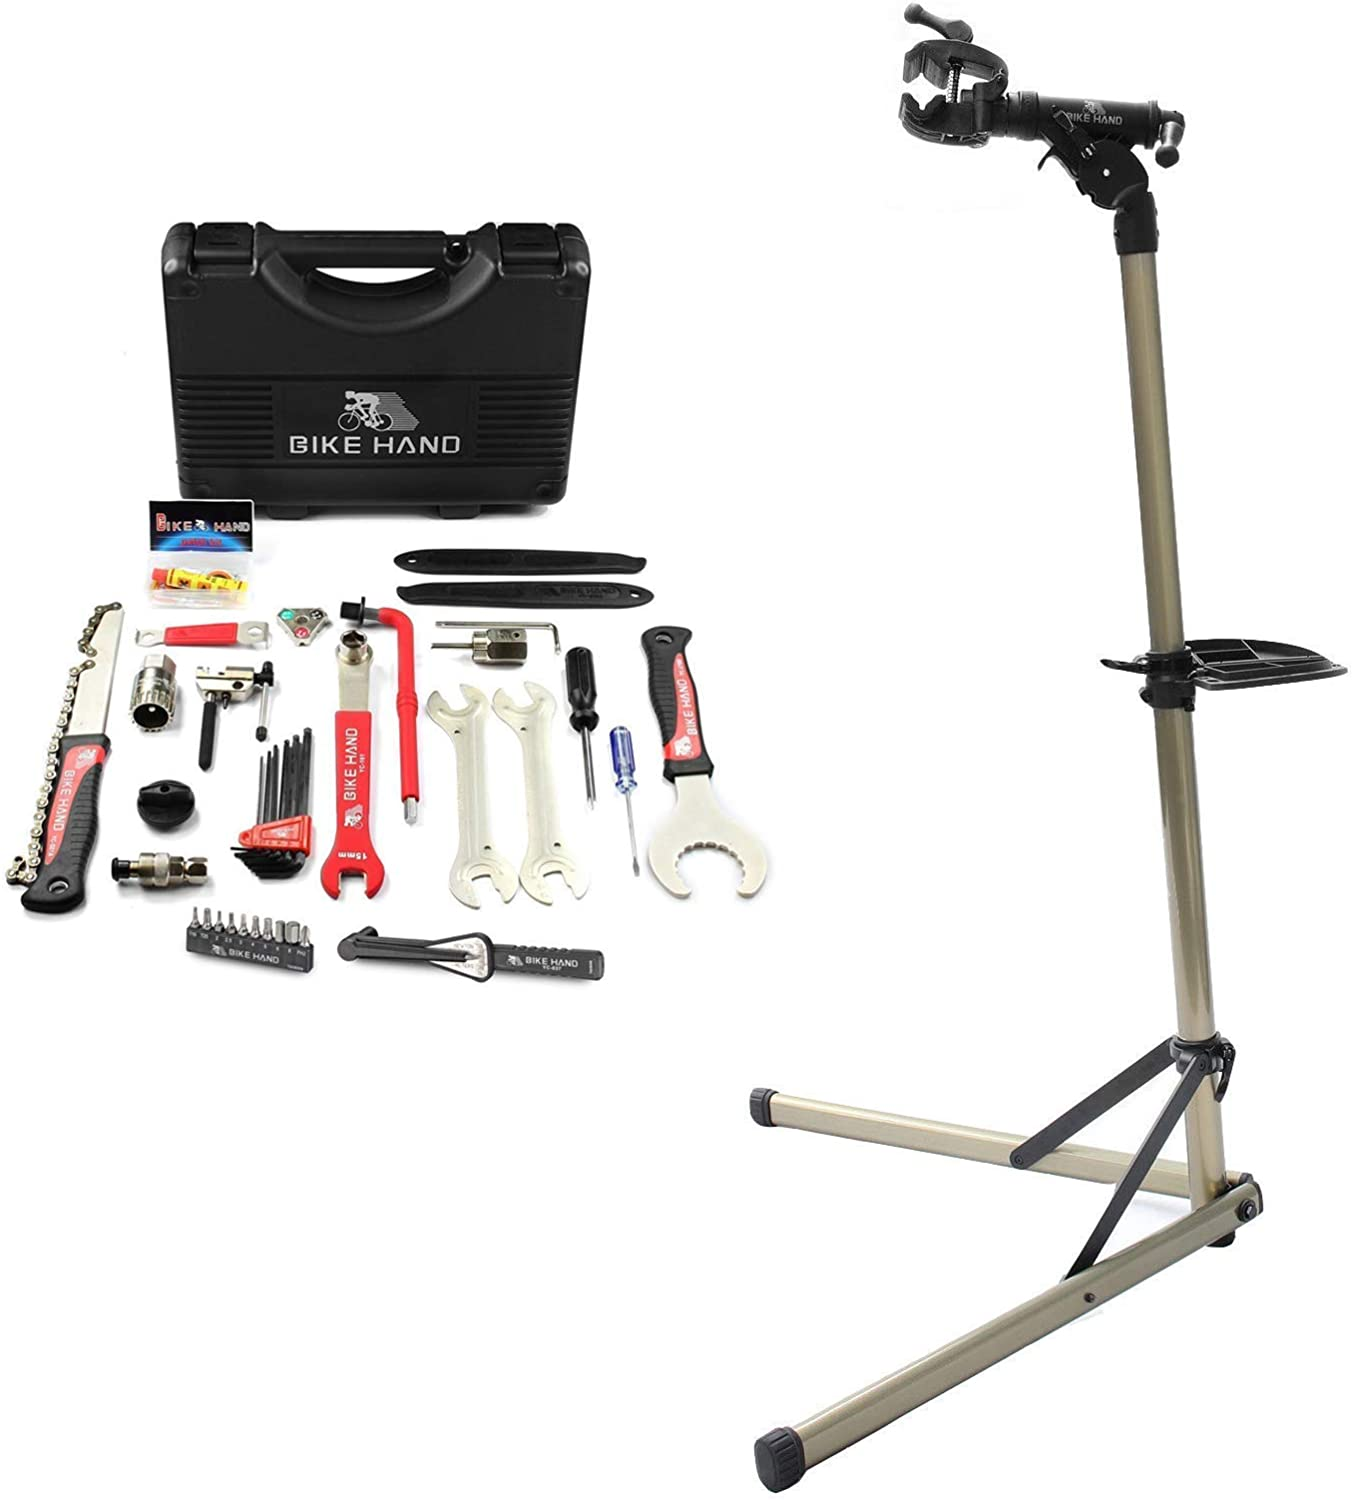 Bikehand Bike Repair Stand (Max 55 lbs) - Home Portable Bicycle Mechanics Workstand Bundle with BIKEHAND 17 Piece Bike Bicycle Repair Tool Kit Set Maintenance Kits with Torque Wrench